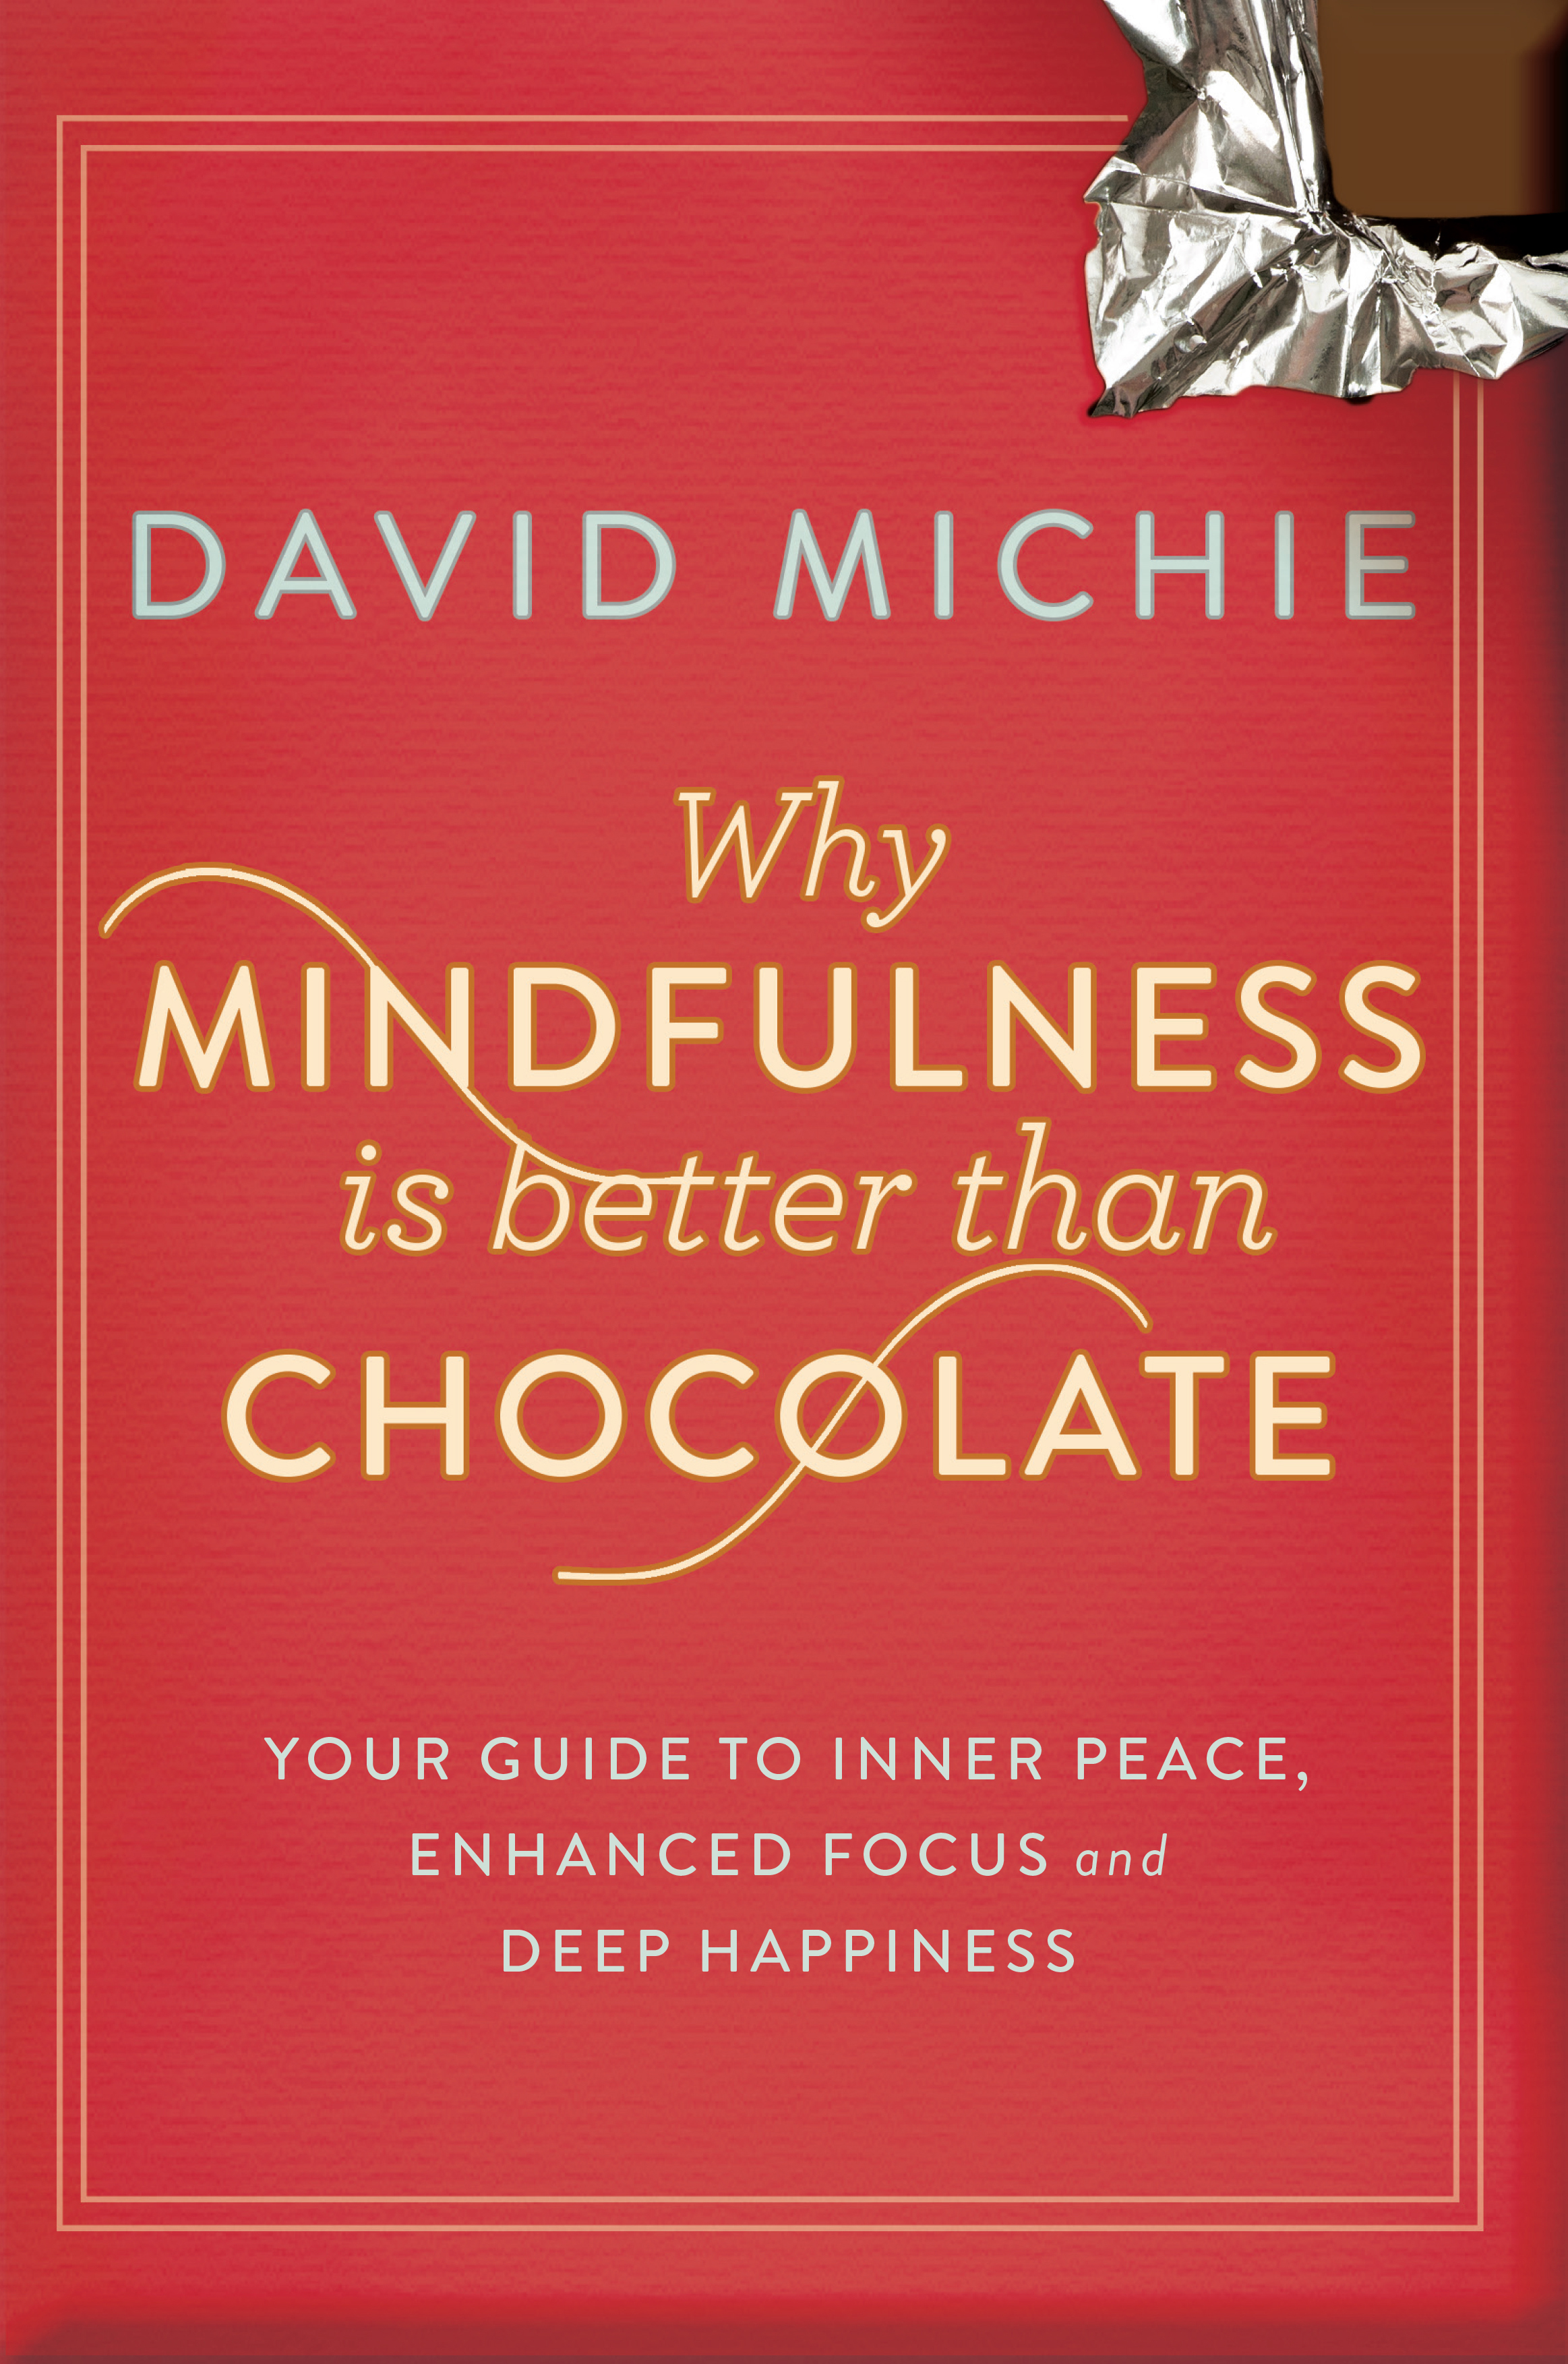 Why Mindfulness is Better than Chocolate - David Michie ...